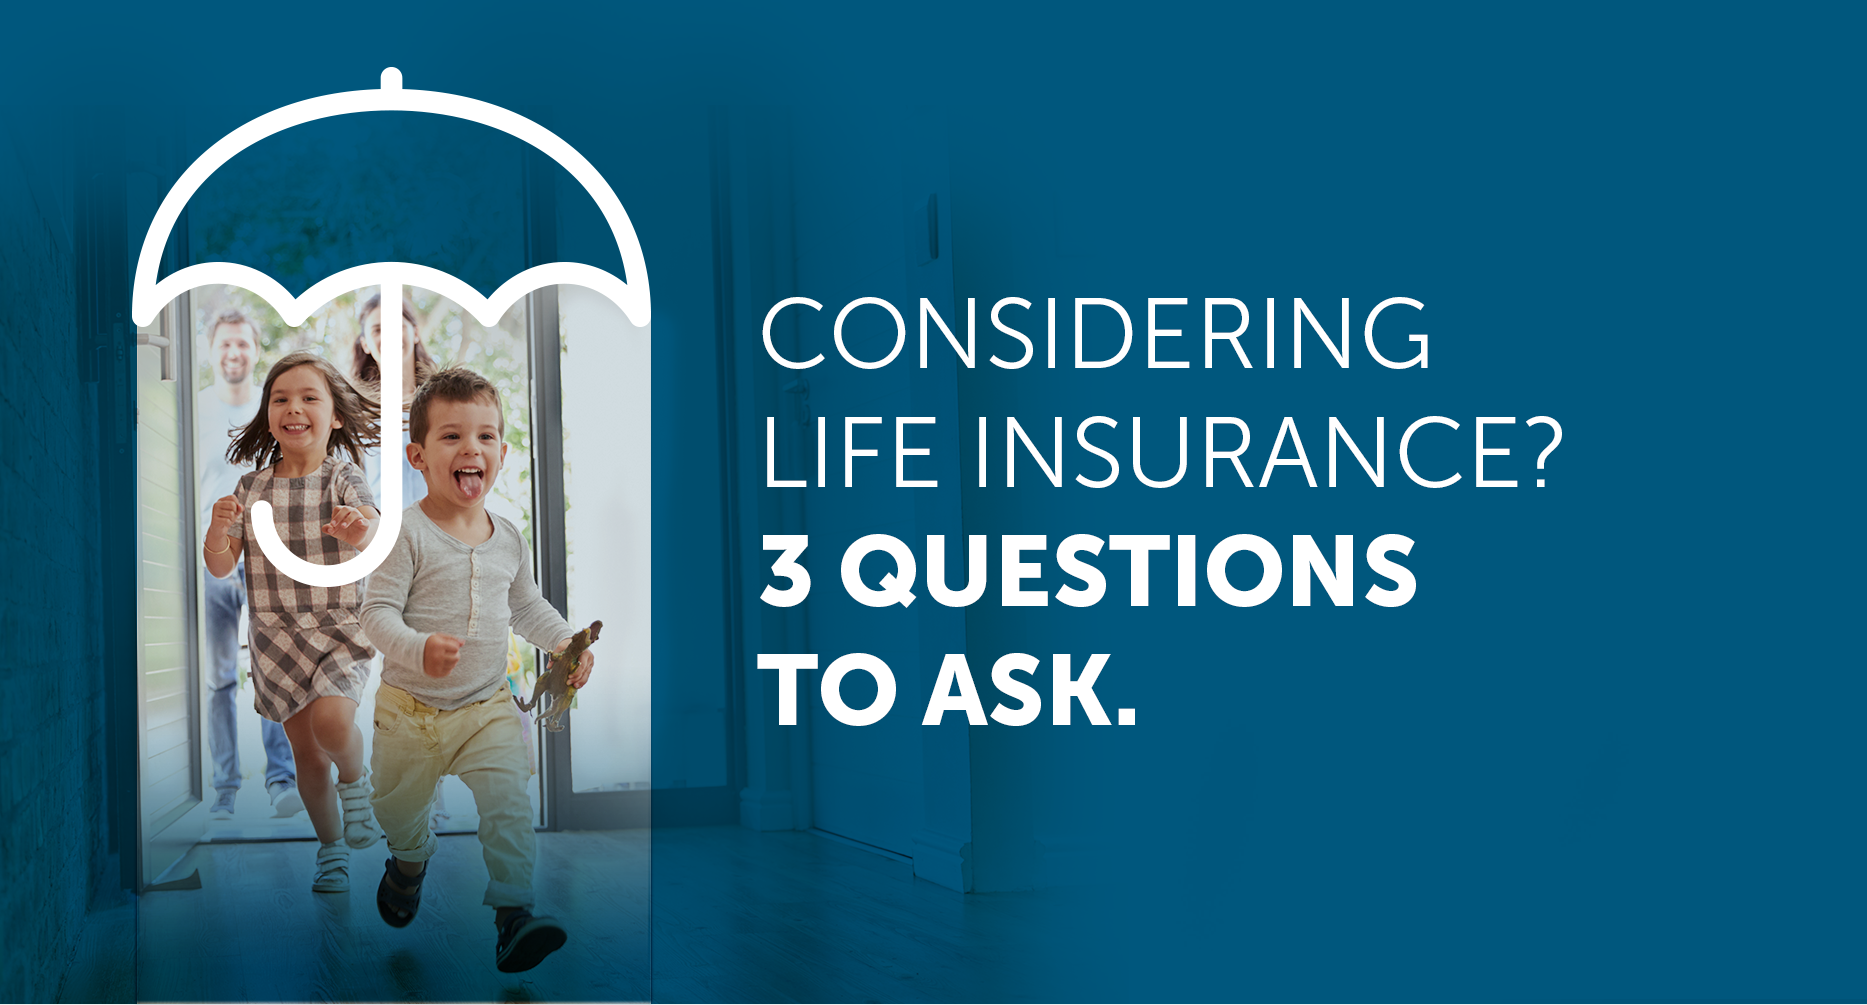 Considering life insurance? 3 questions to ask.